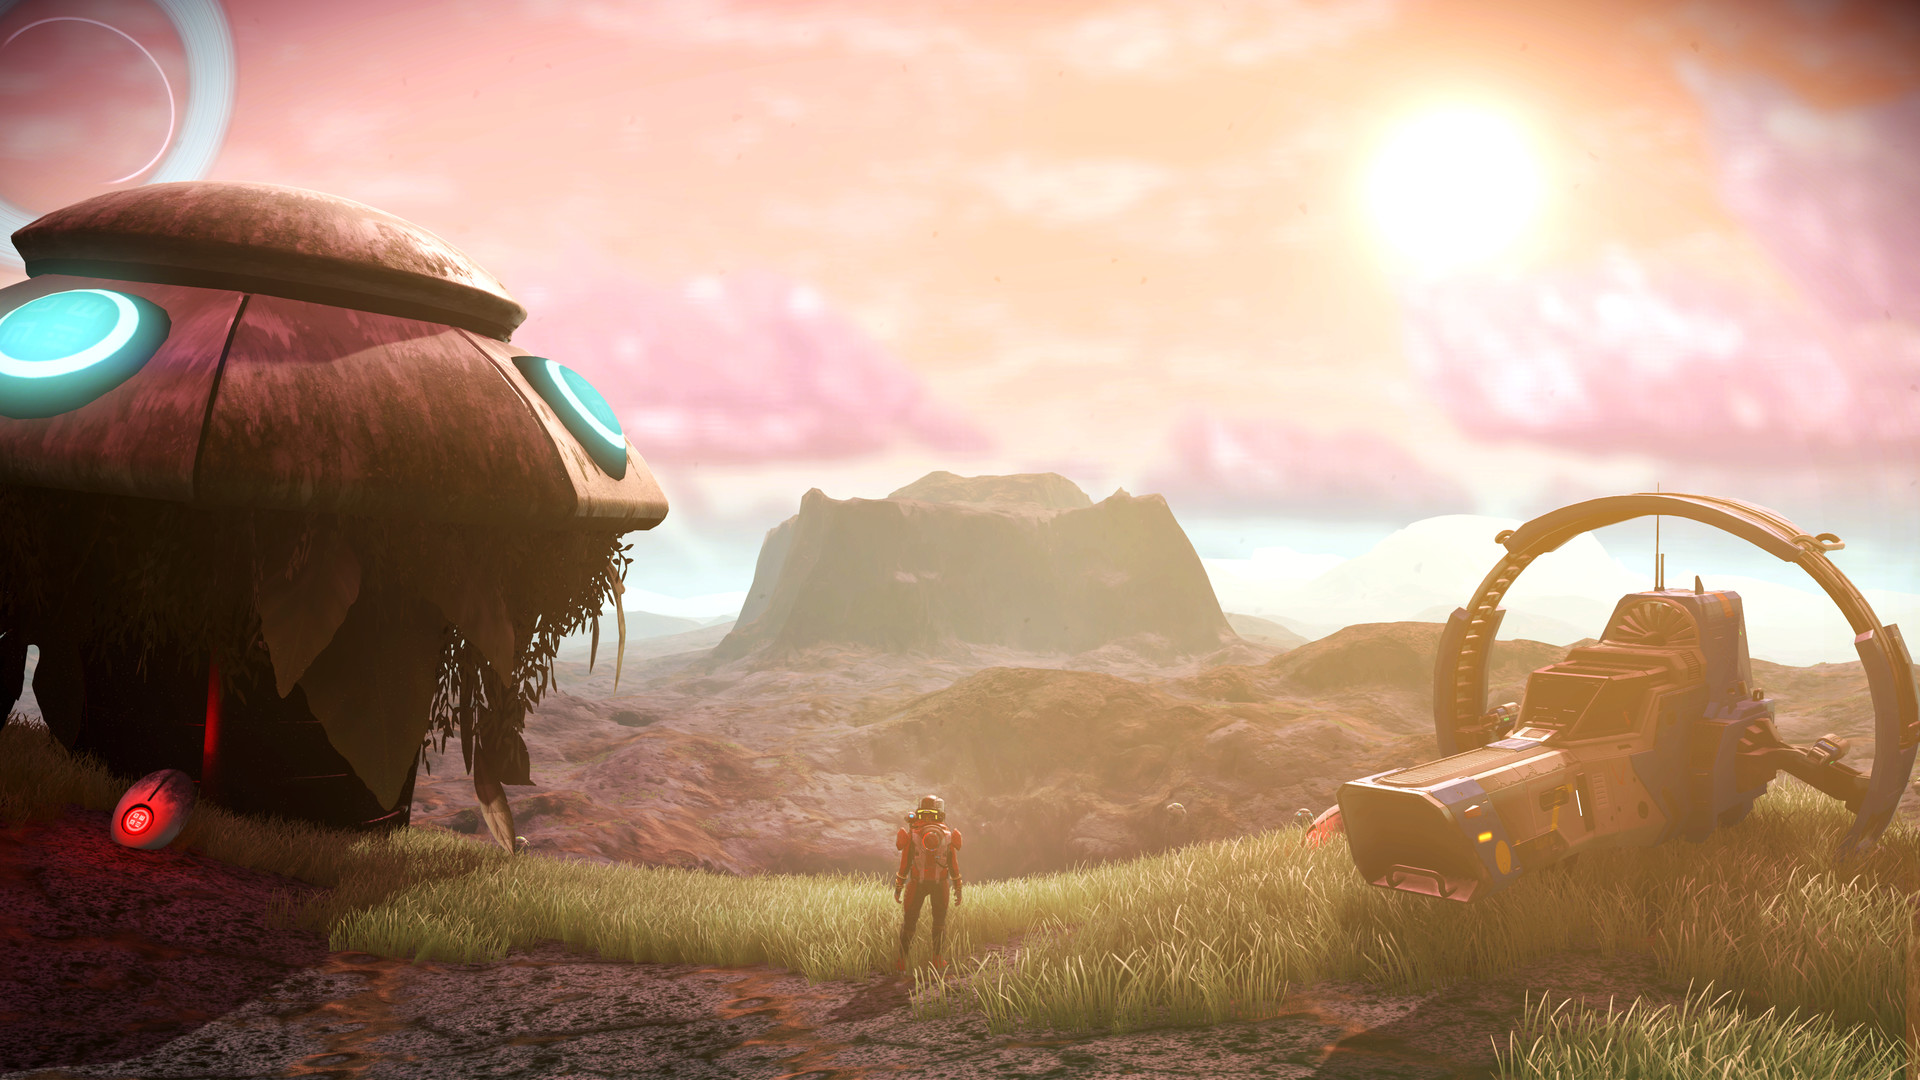 Find the best gaming PC for NMS